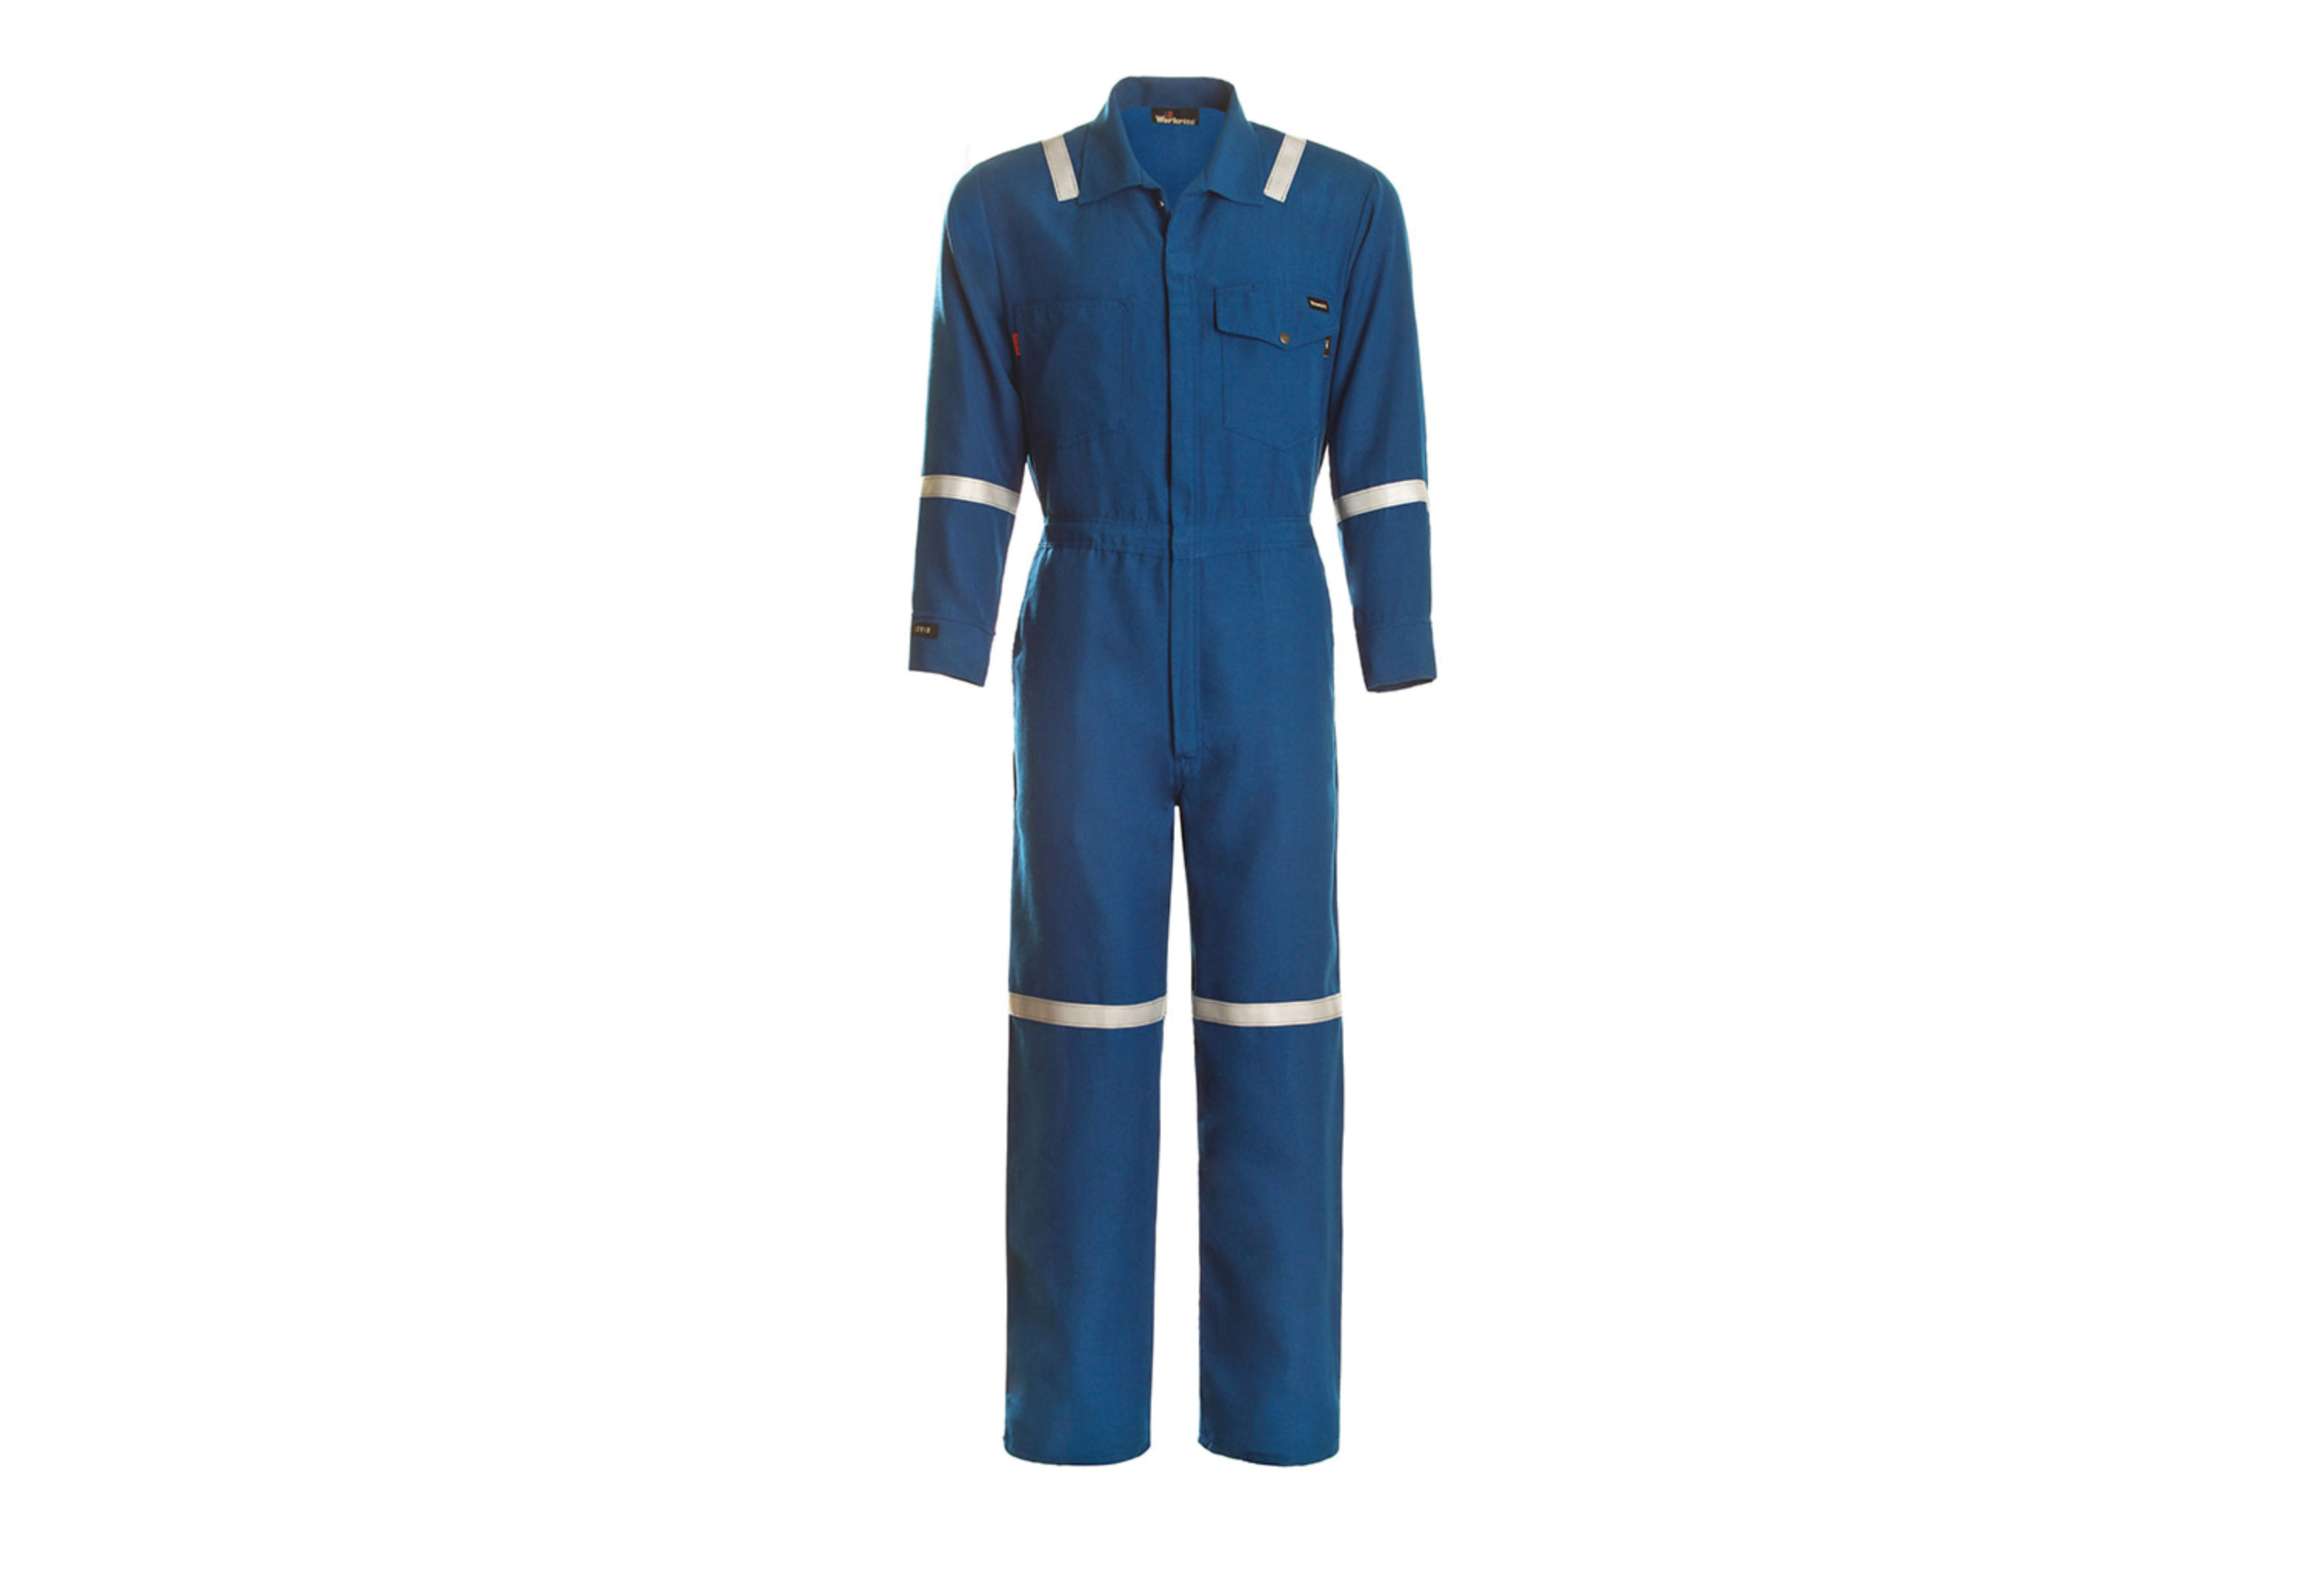 Workrite Uniform Co.'s industrial coverall